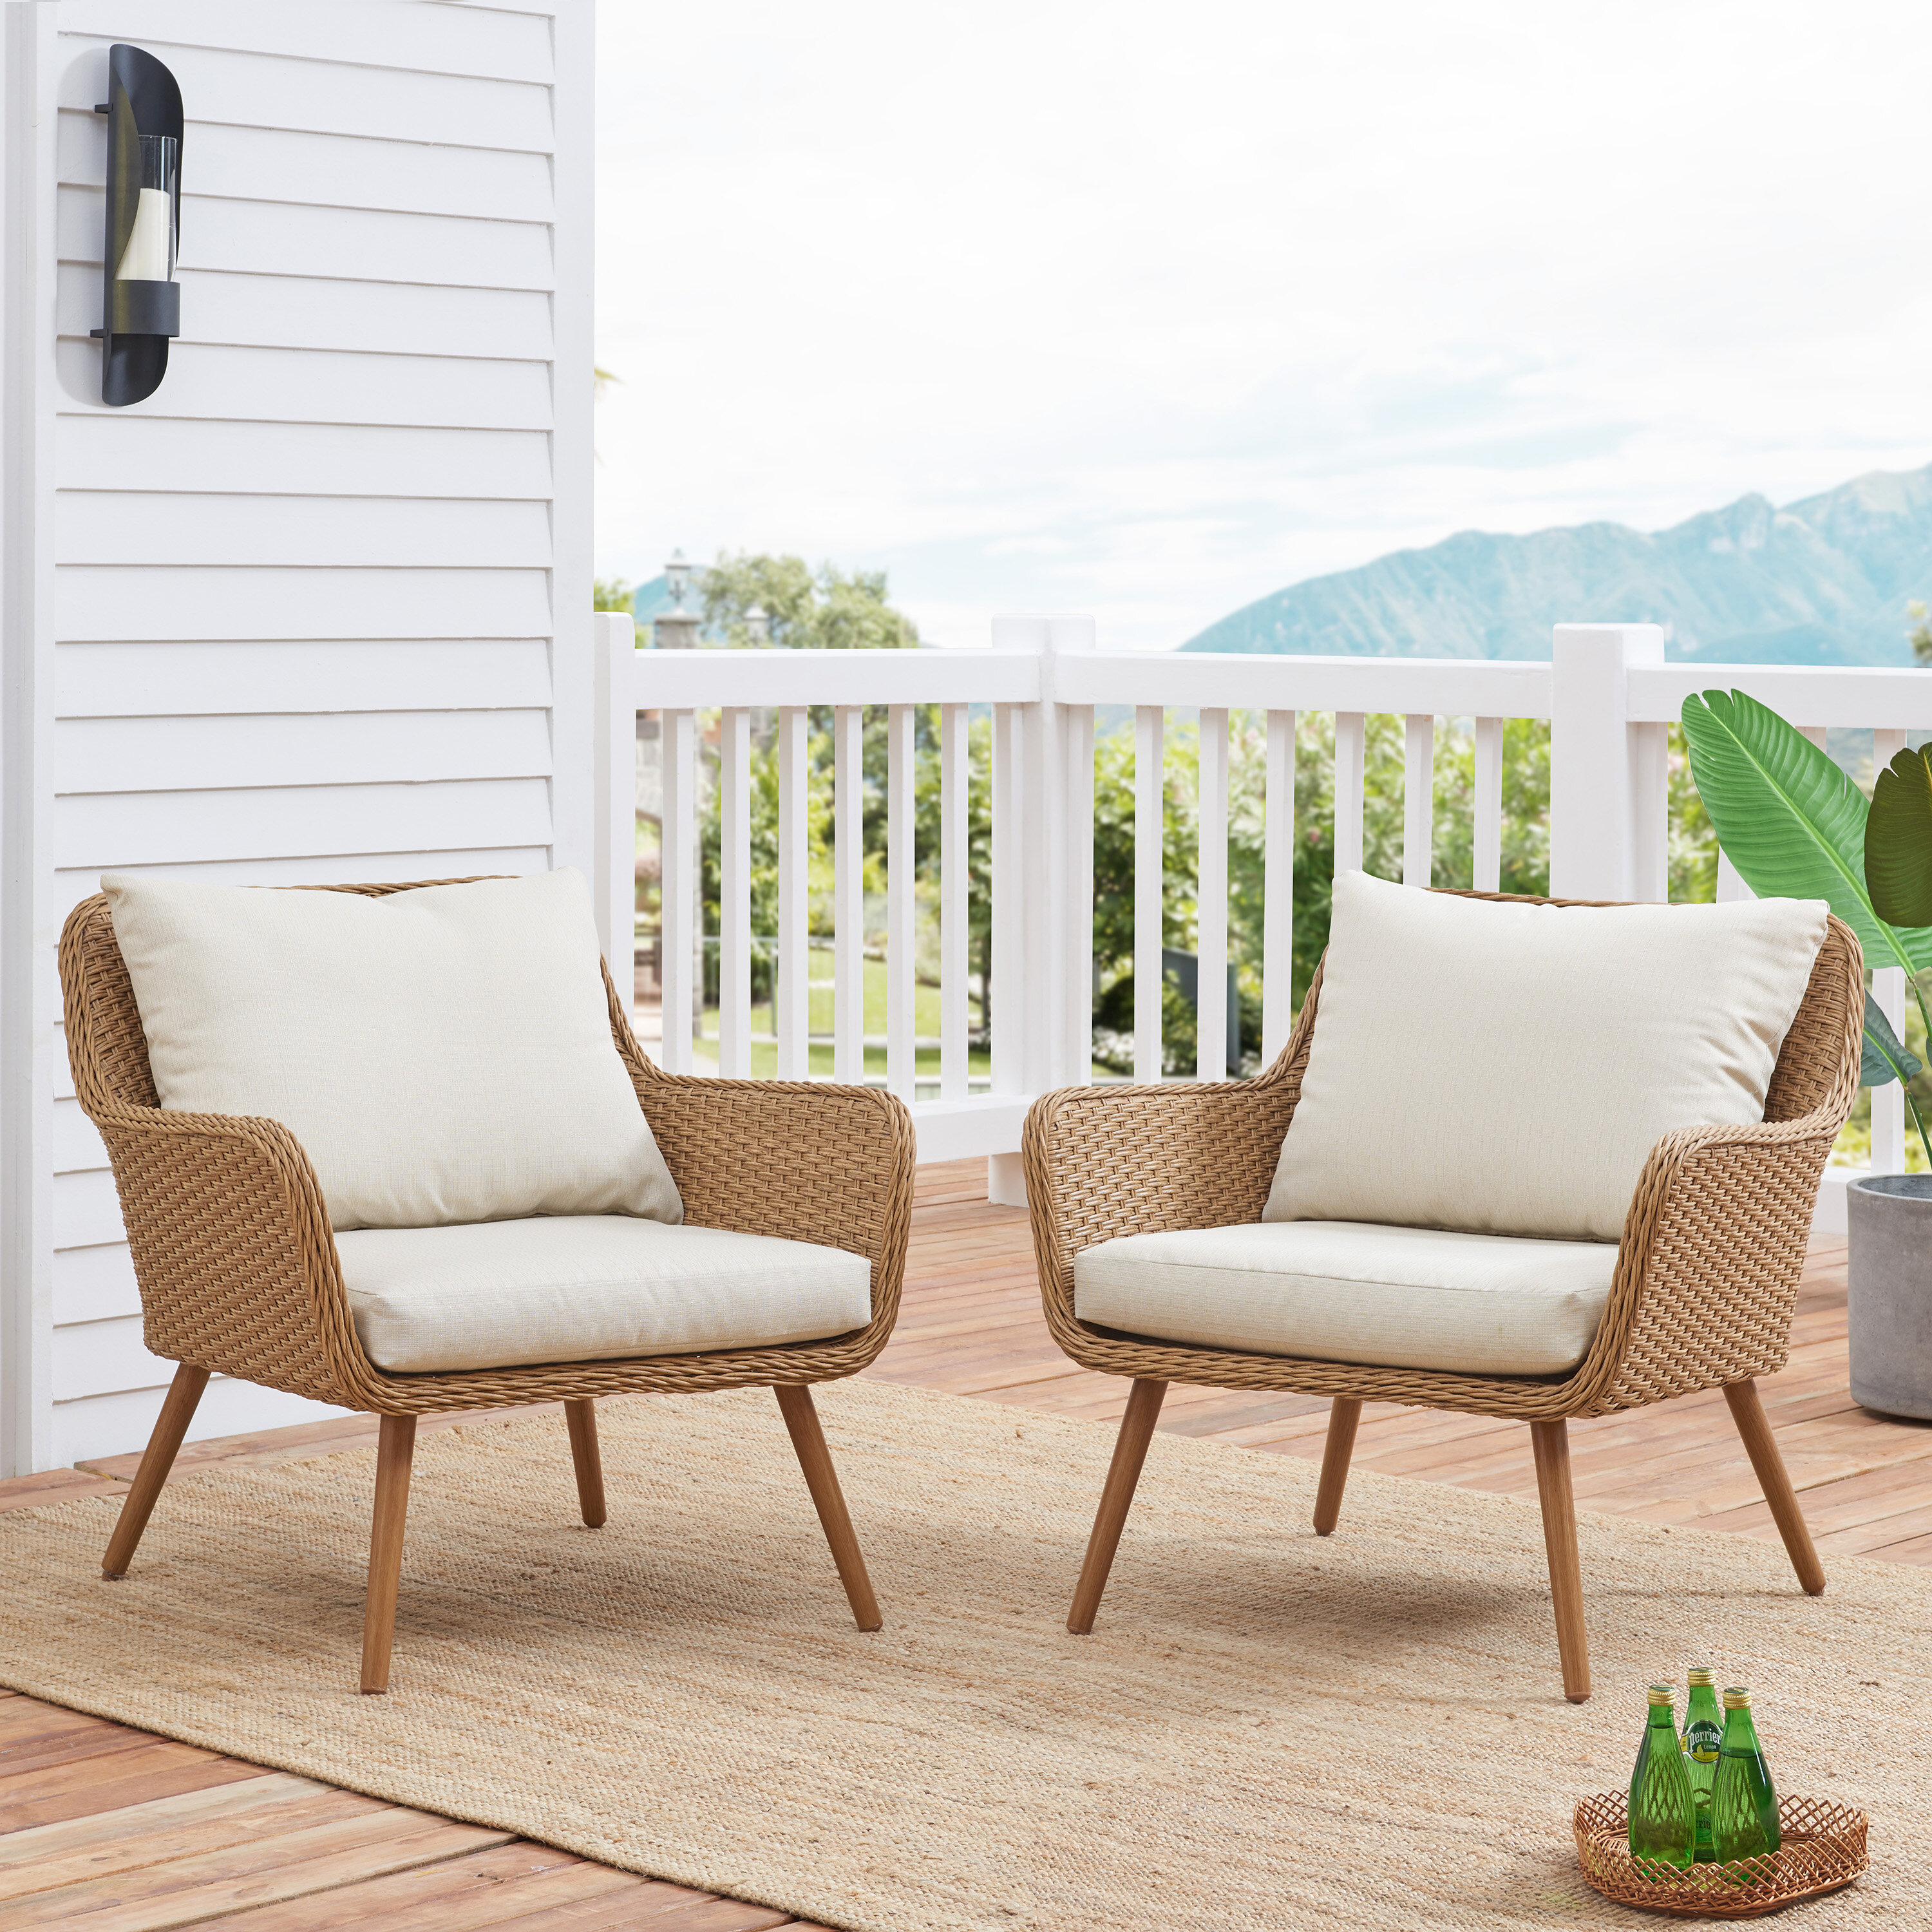 Macgregor Outdoor Patio Chair with Cushions